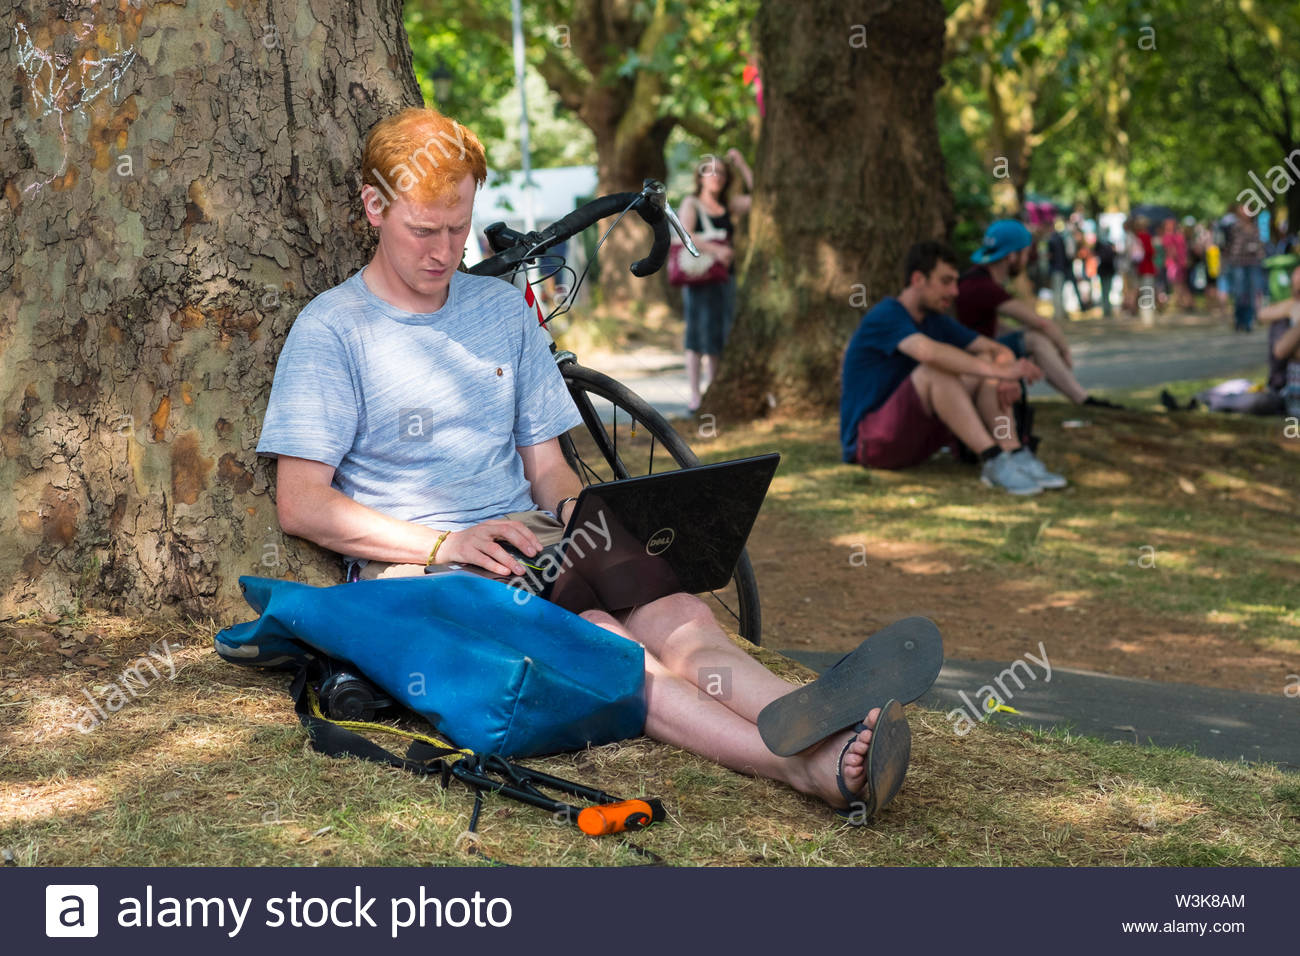 Bristol, United Kingdom - 16 July 2019: Extinction Rebellion protester takes a break in Castle Park as the group take over Bristol city centre for a second day as part of their Summer Uprising campaign drawing attention to environmental issues. Credit: Andy Parker/Alamy Live News - Stock Image